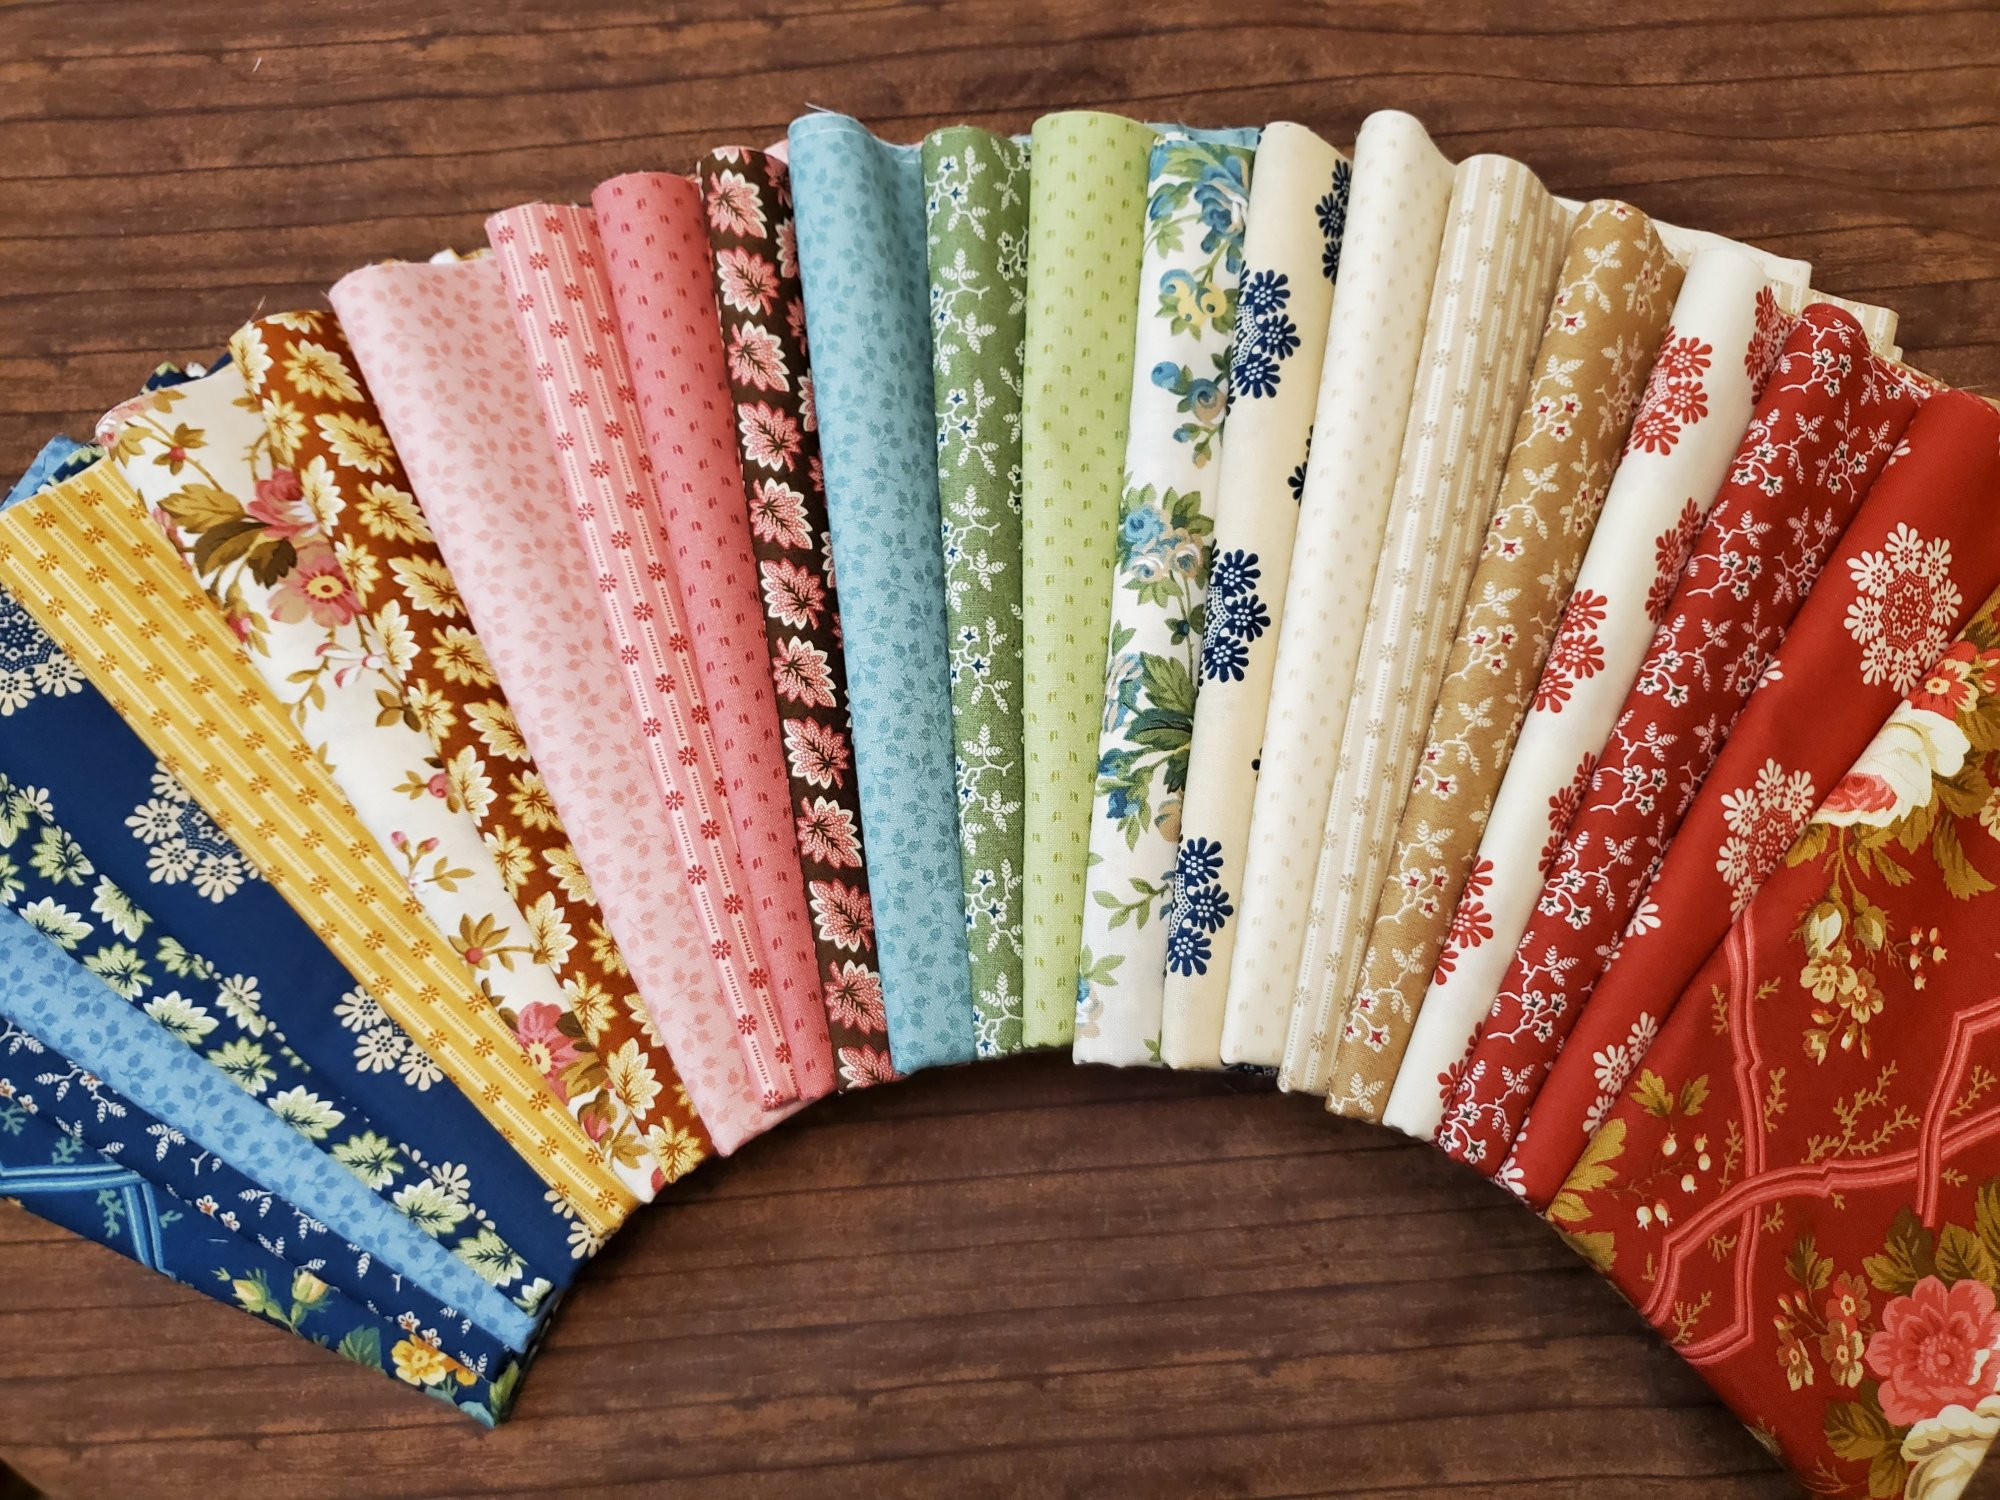 Agatha's Garden by Kathy Hall for Andover - 24 Piece Half Yard Bundle Pack